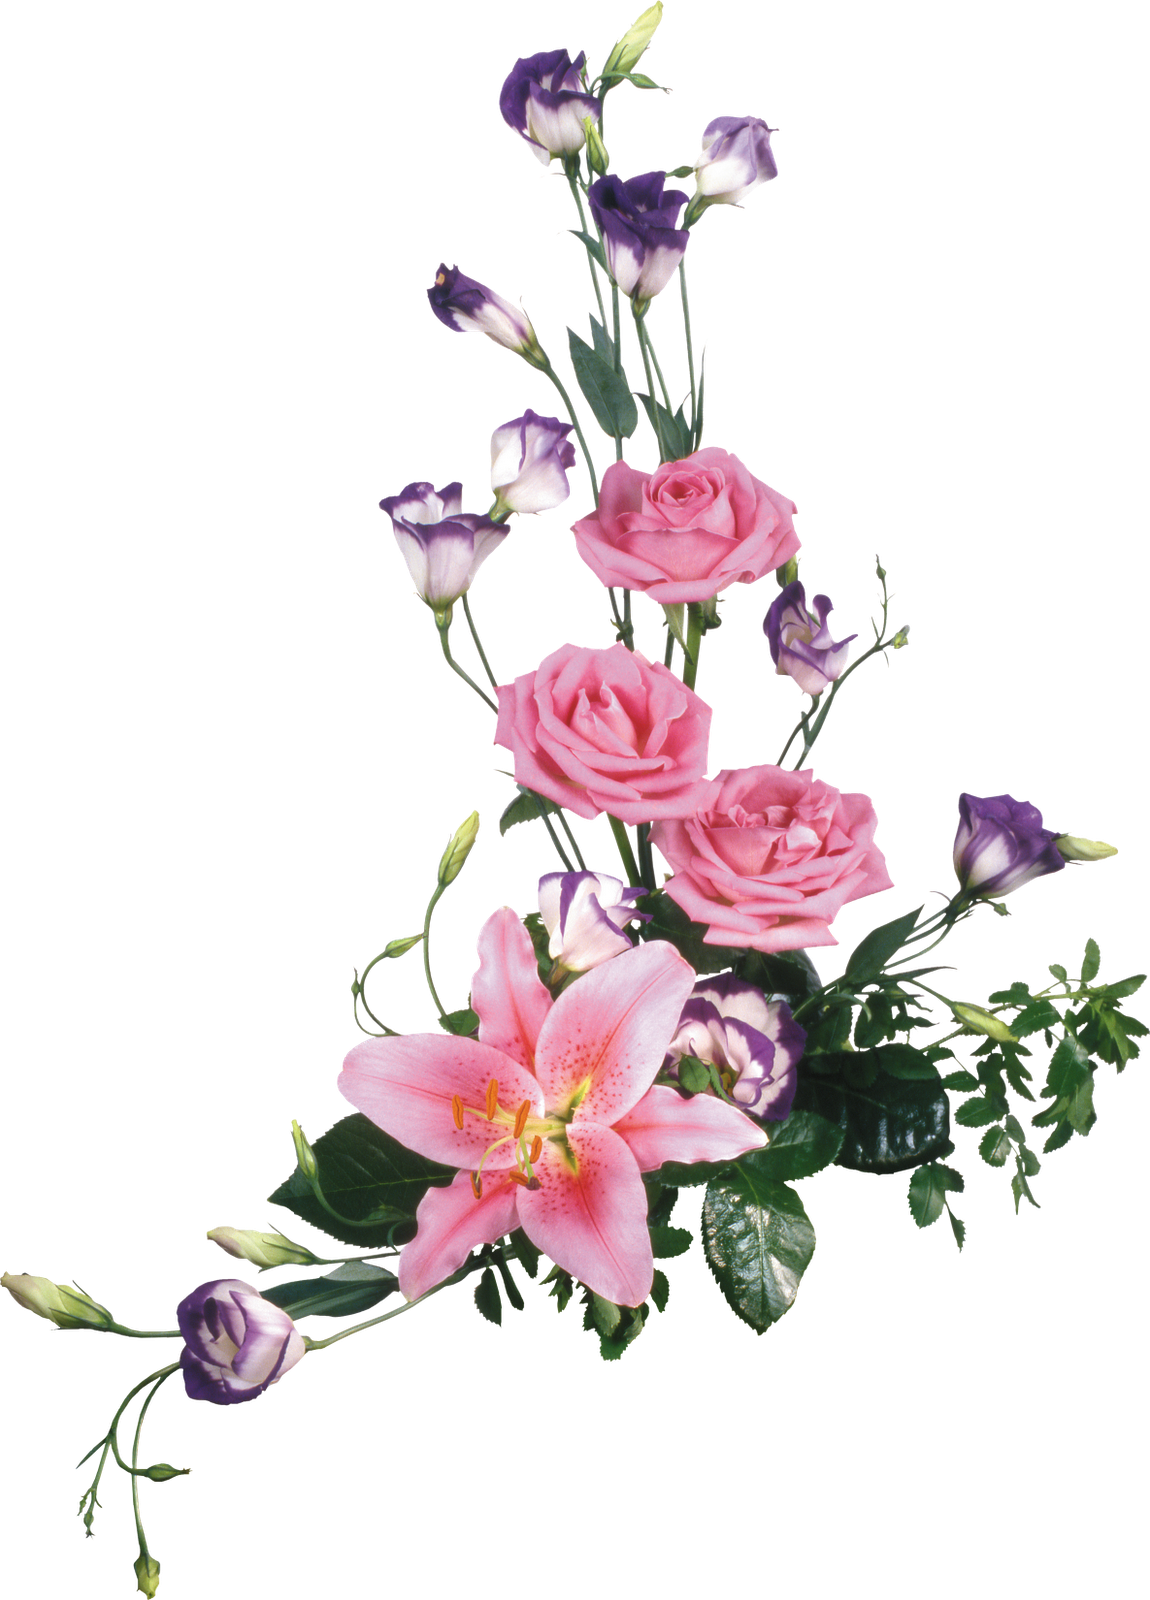 flores formato png